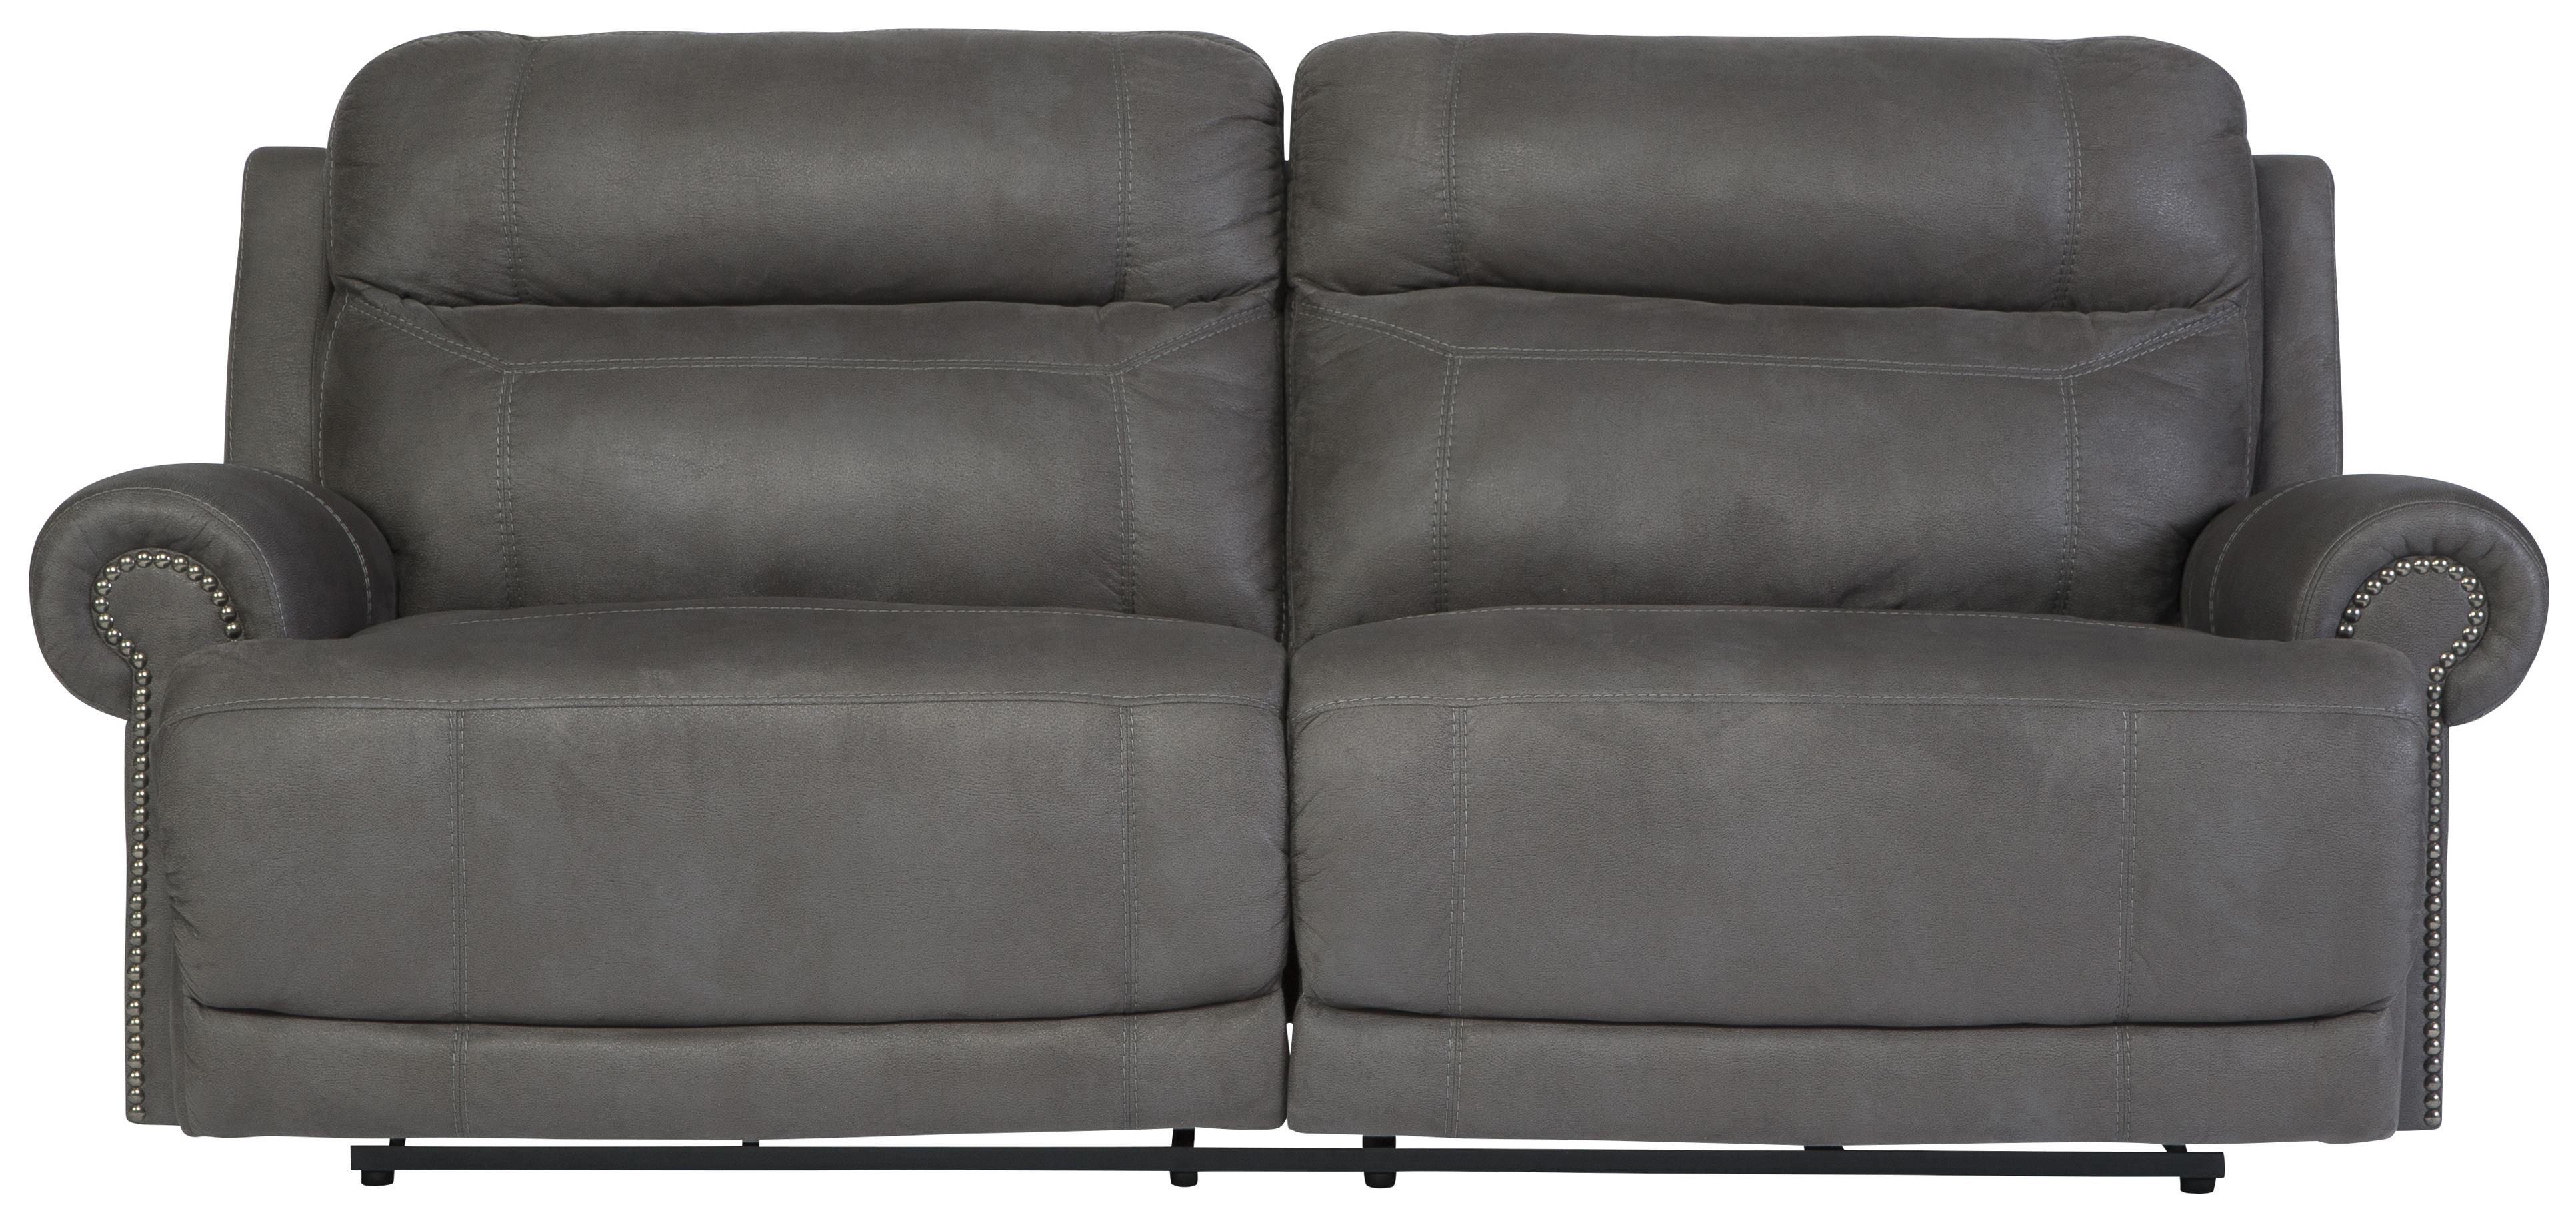 Austere - Gray 2 Seat Reclining Power Sofa by Signature Design by Ashley at Beds N Stuff